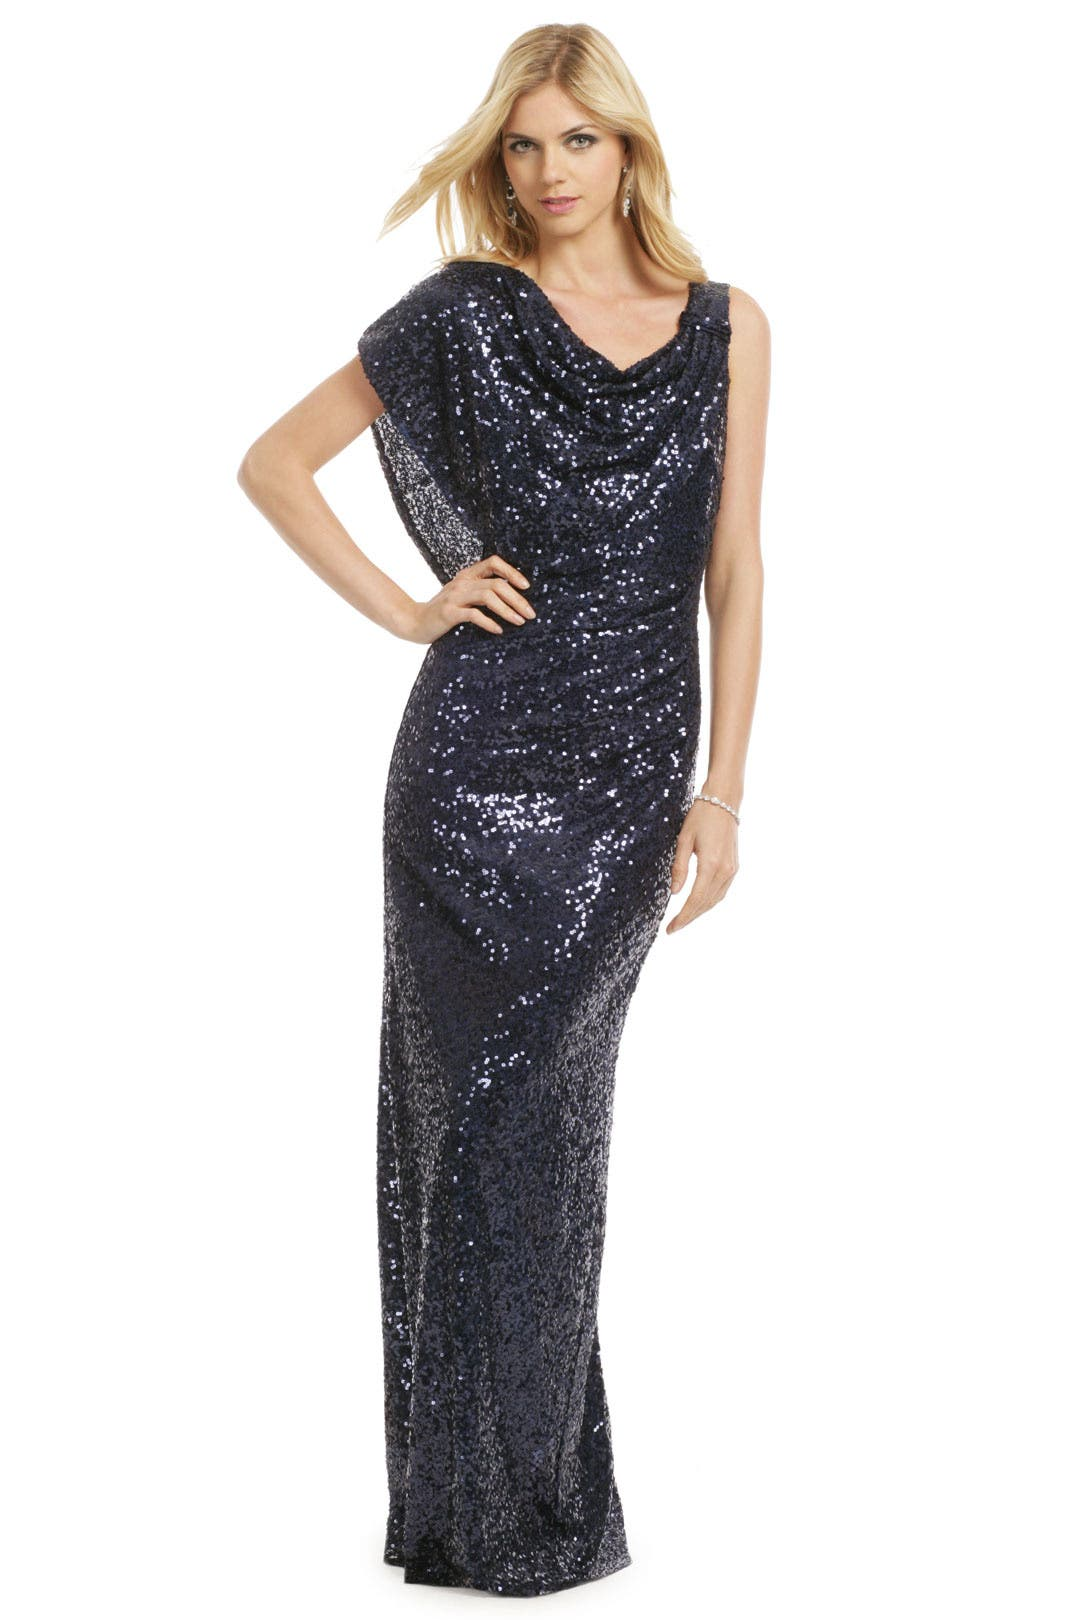 American Liberty Gown by Badgley Mischka